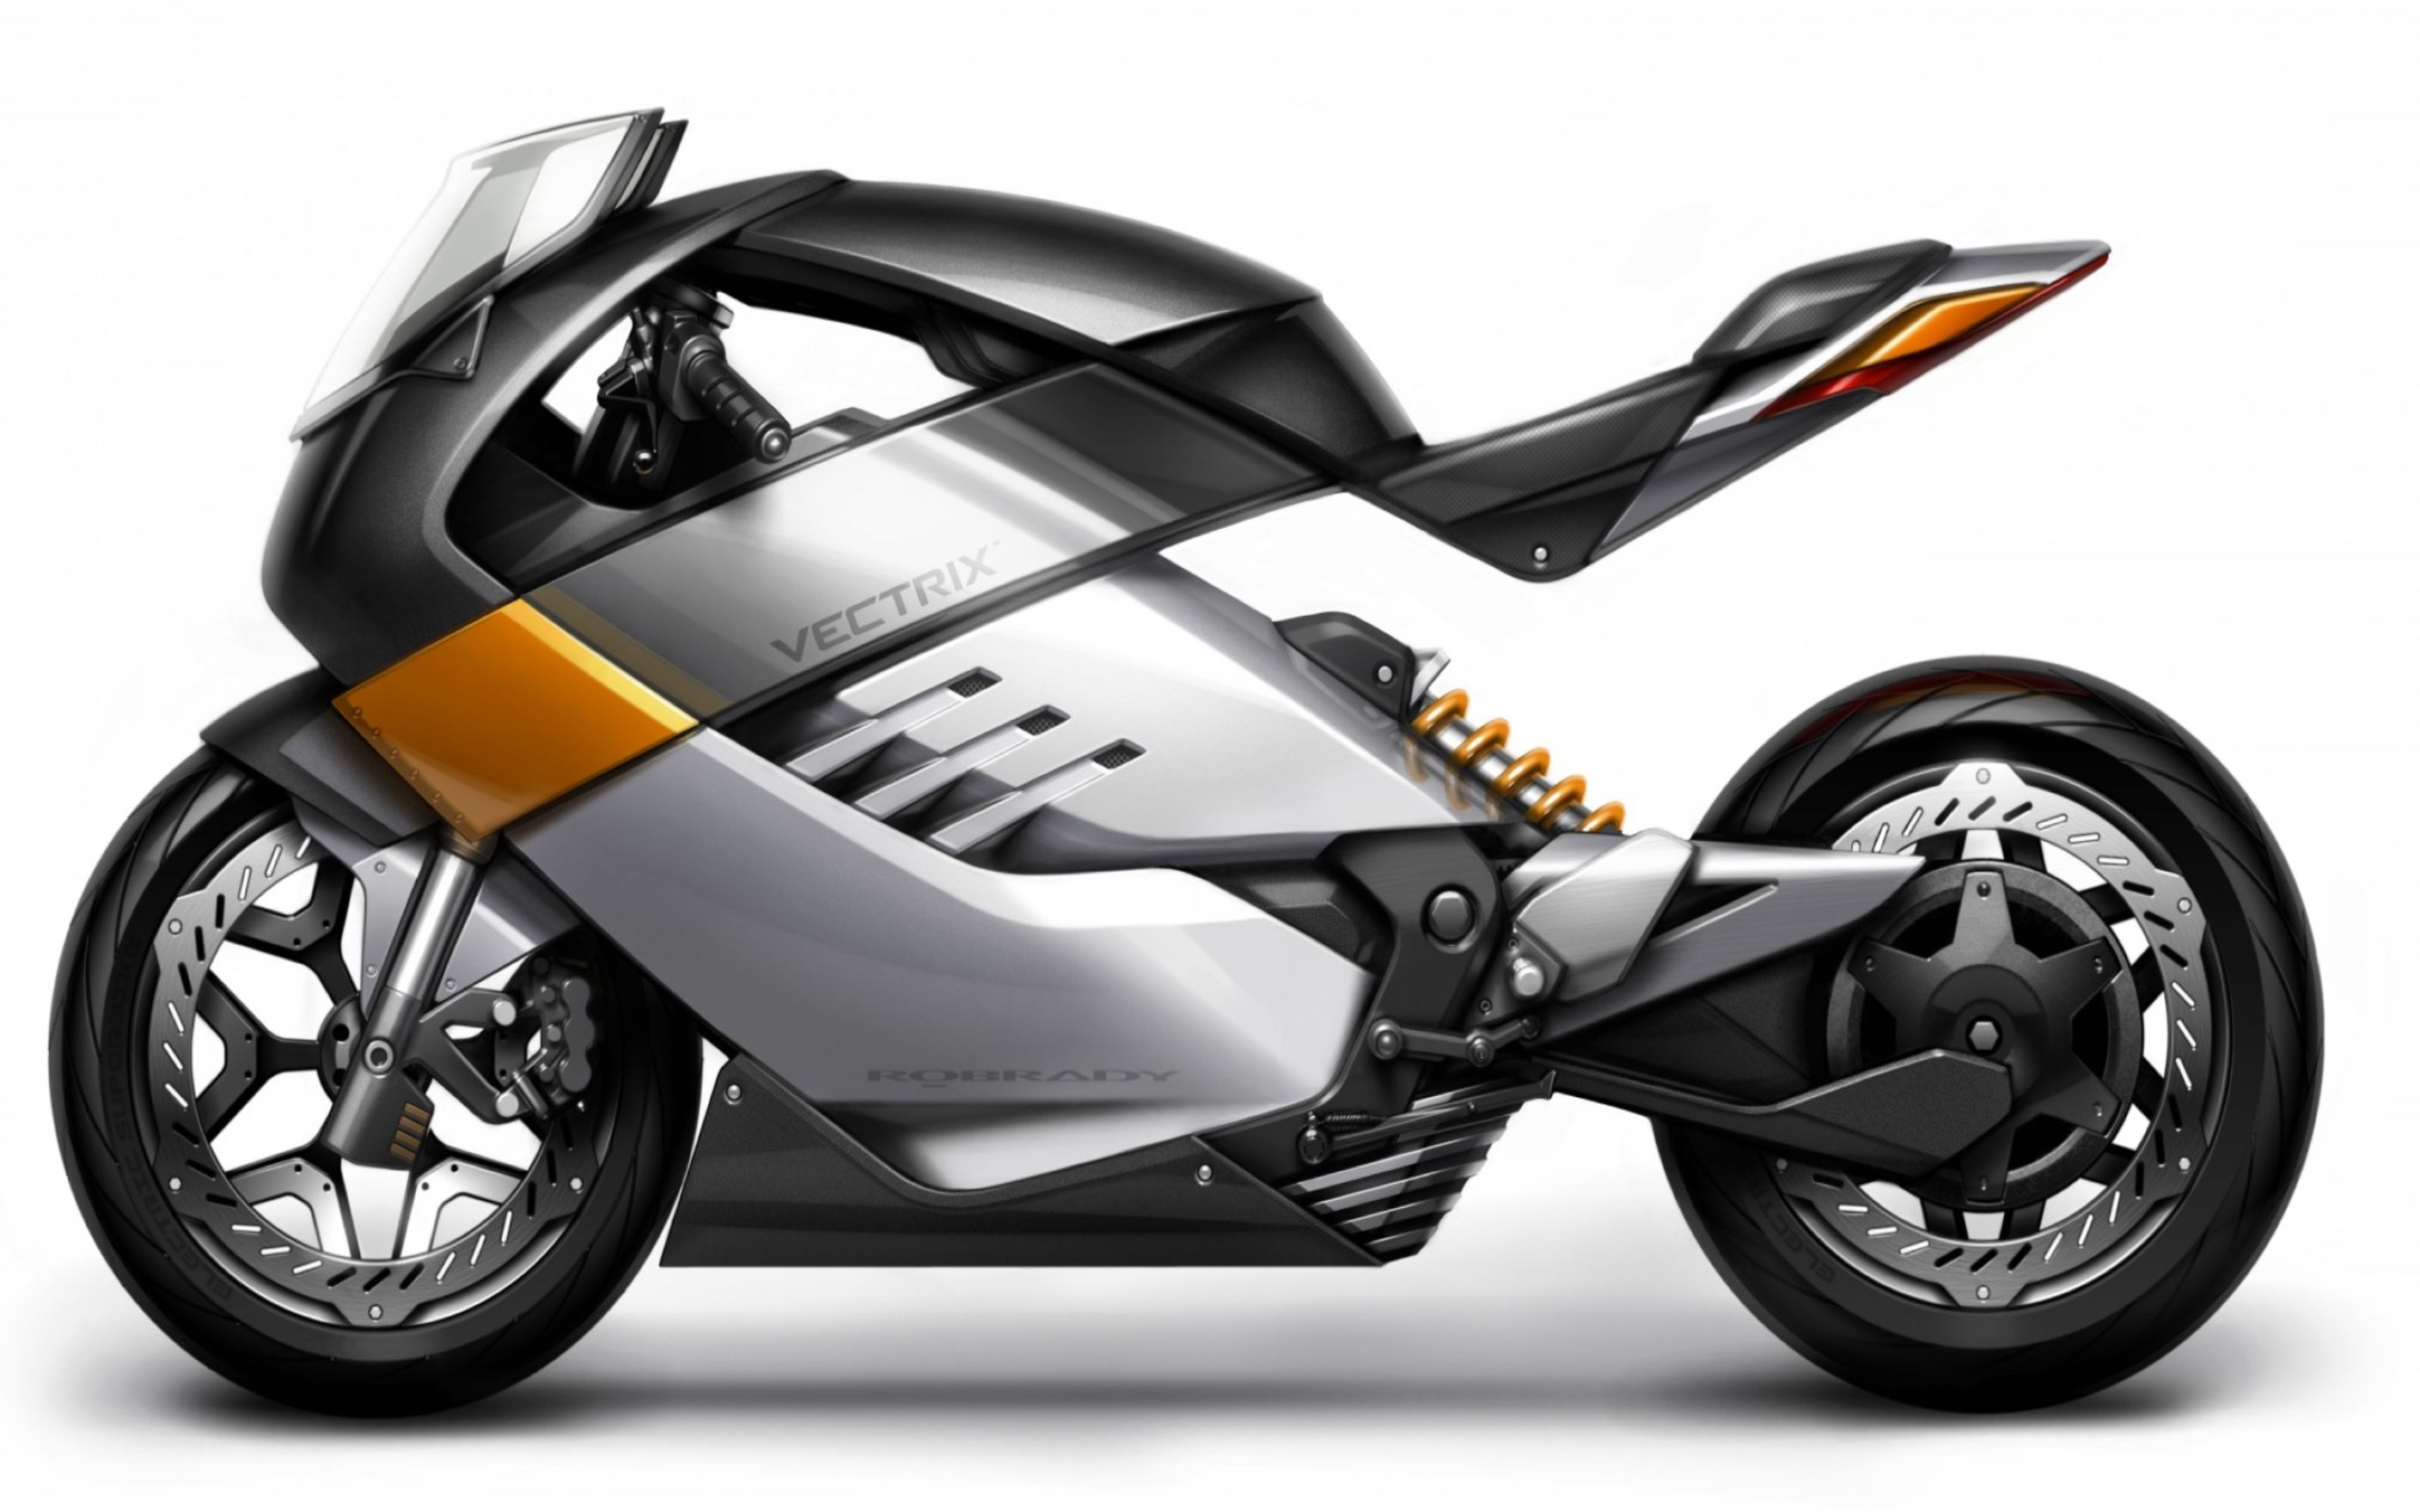 Download free HD Vectrix Concept Electric Motorcycle Wallpaper, image